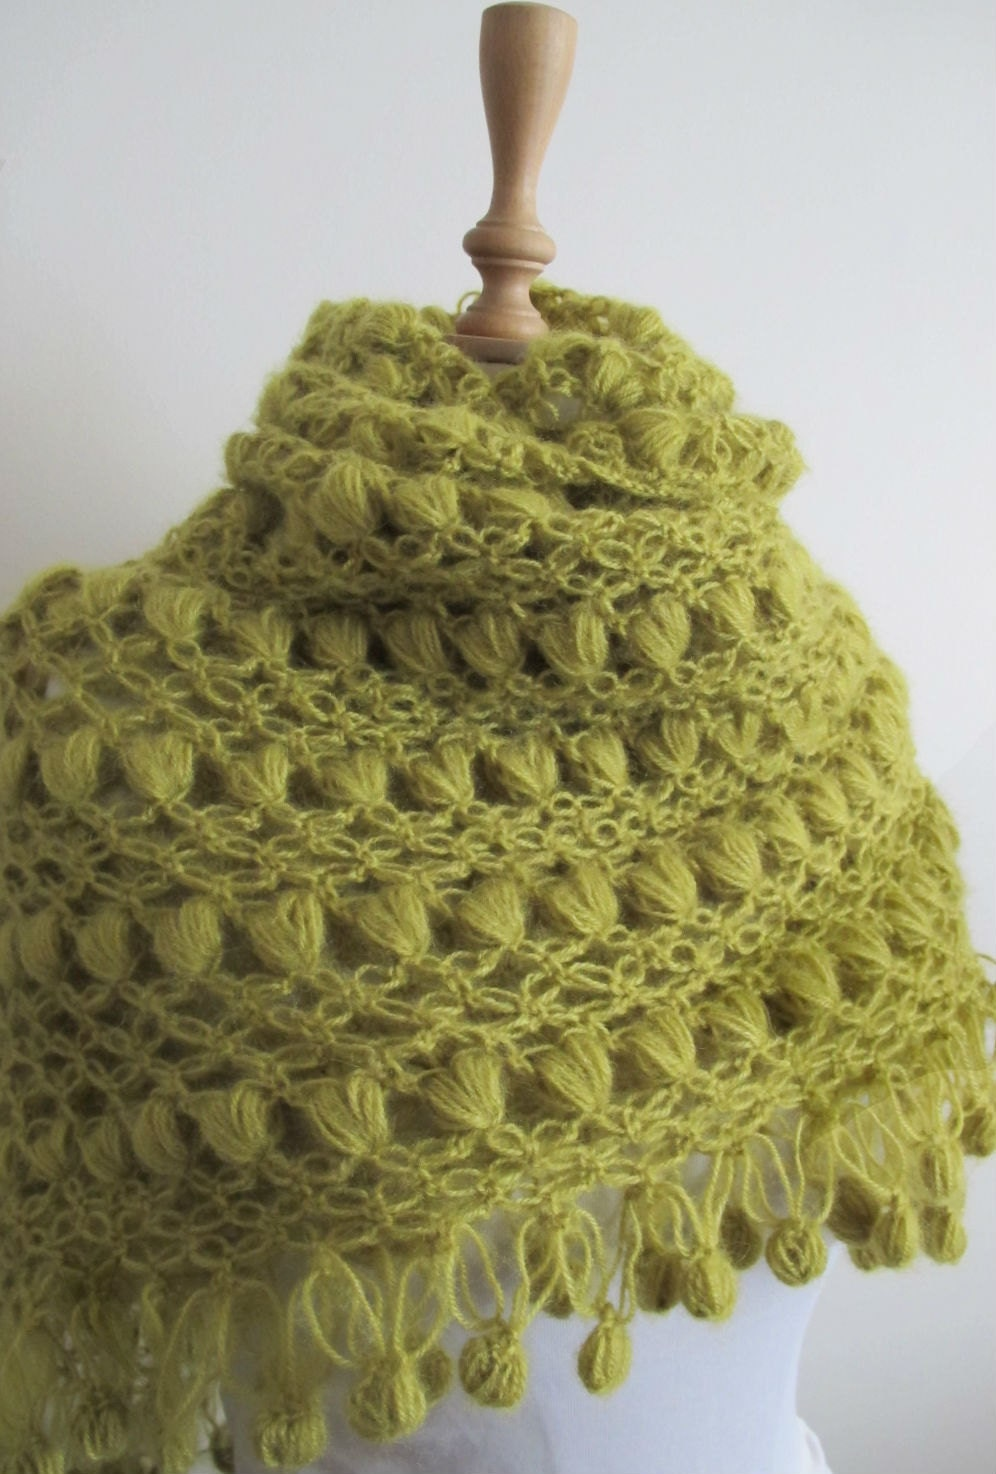 Crochet Or Knit : Free Knit & Crochet Scarf & Hat free online knitting patterns Crochet...